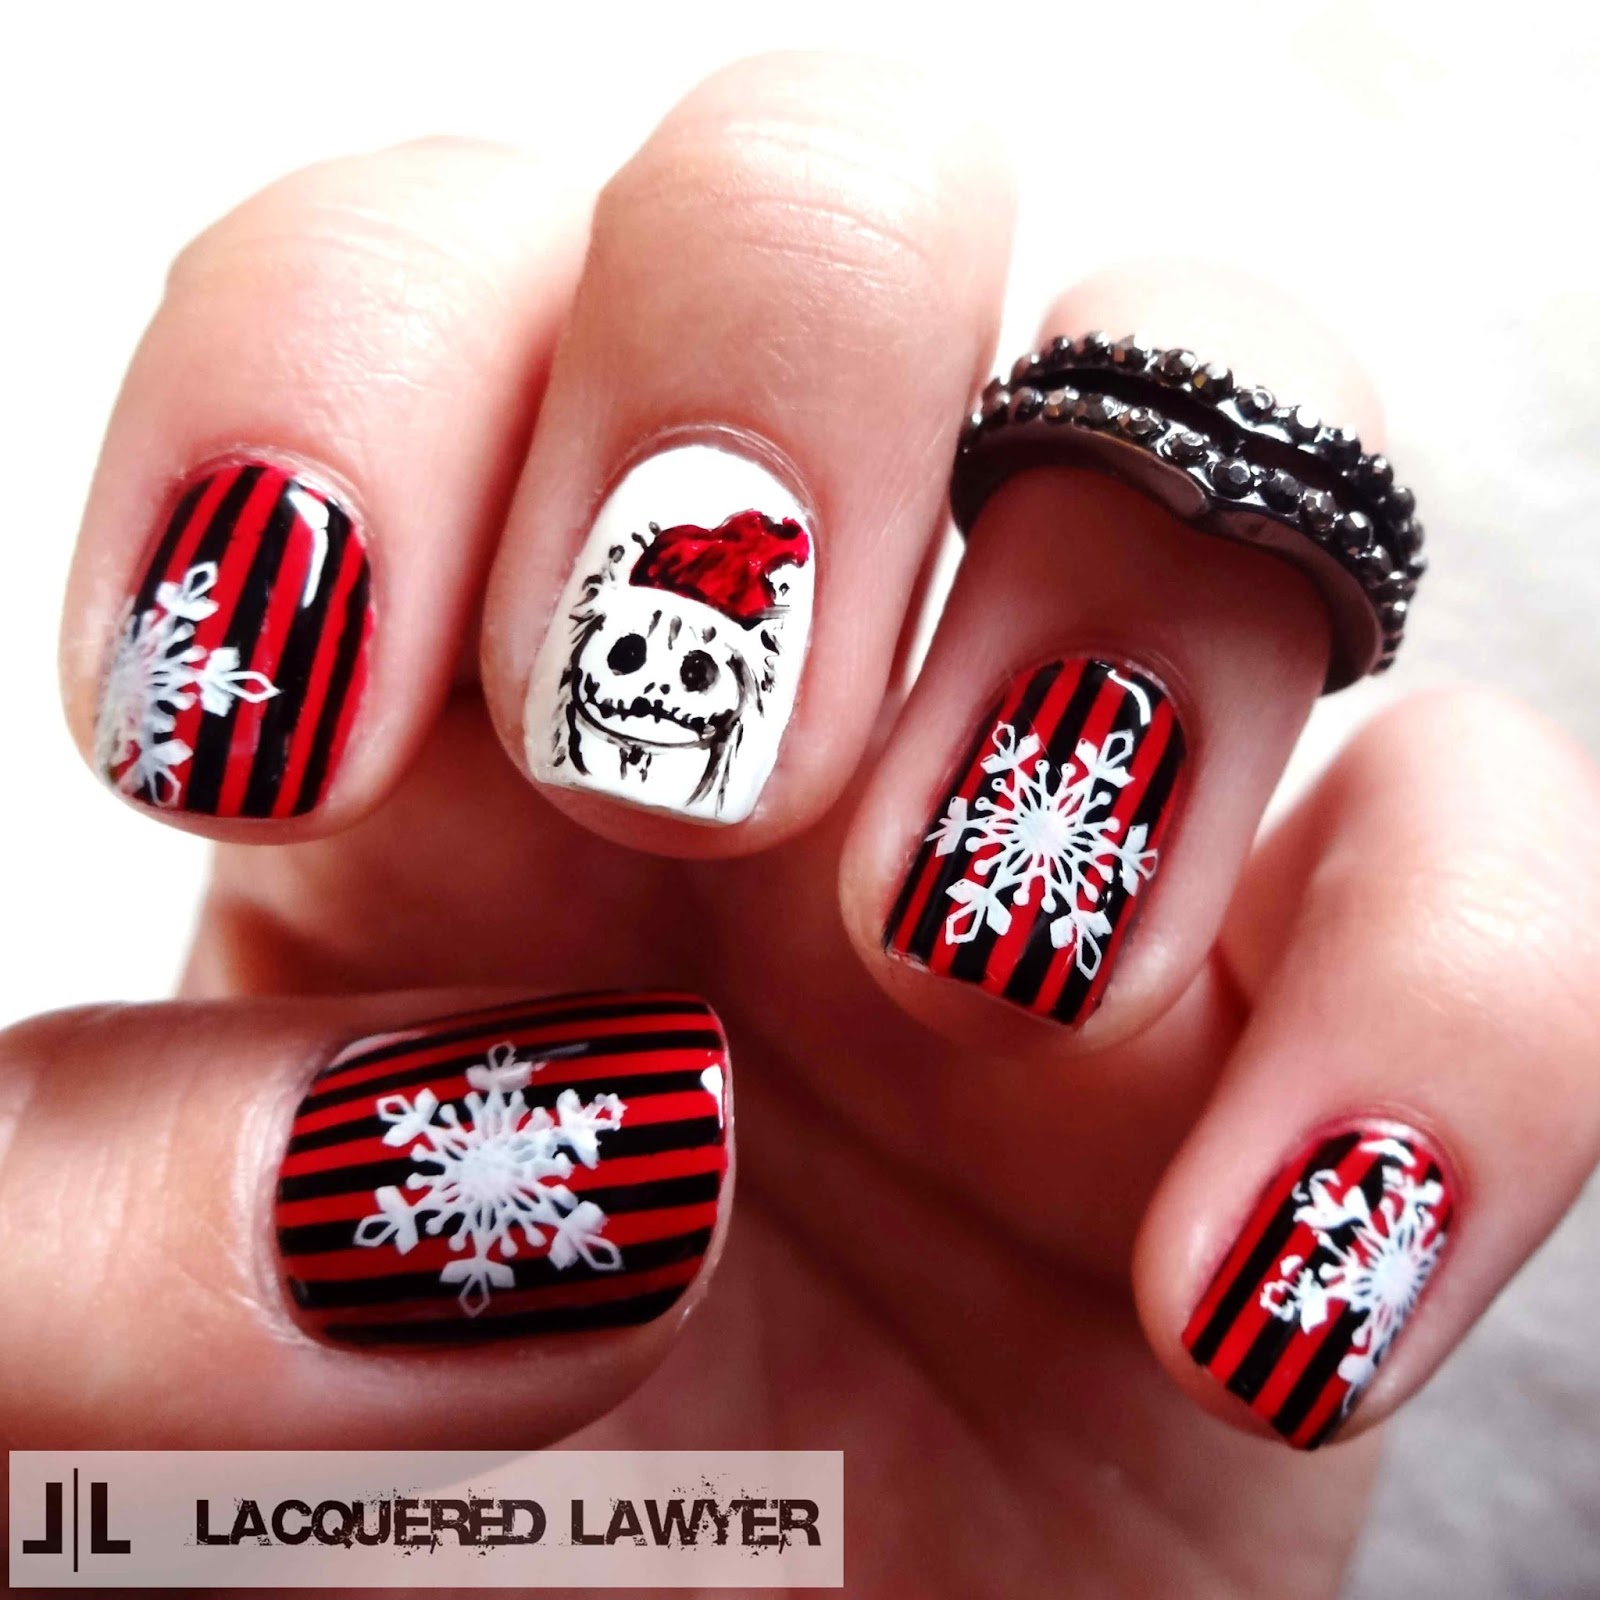 Lacquered Lawyer Nail Art Blog Sandy Claws